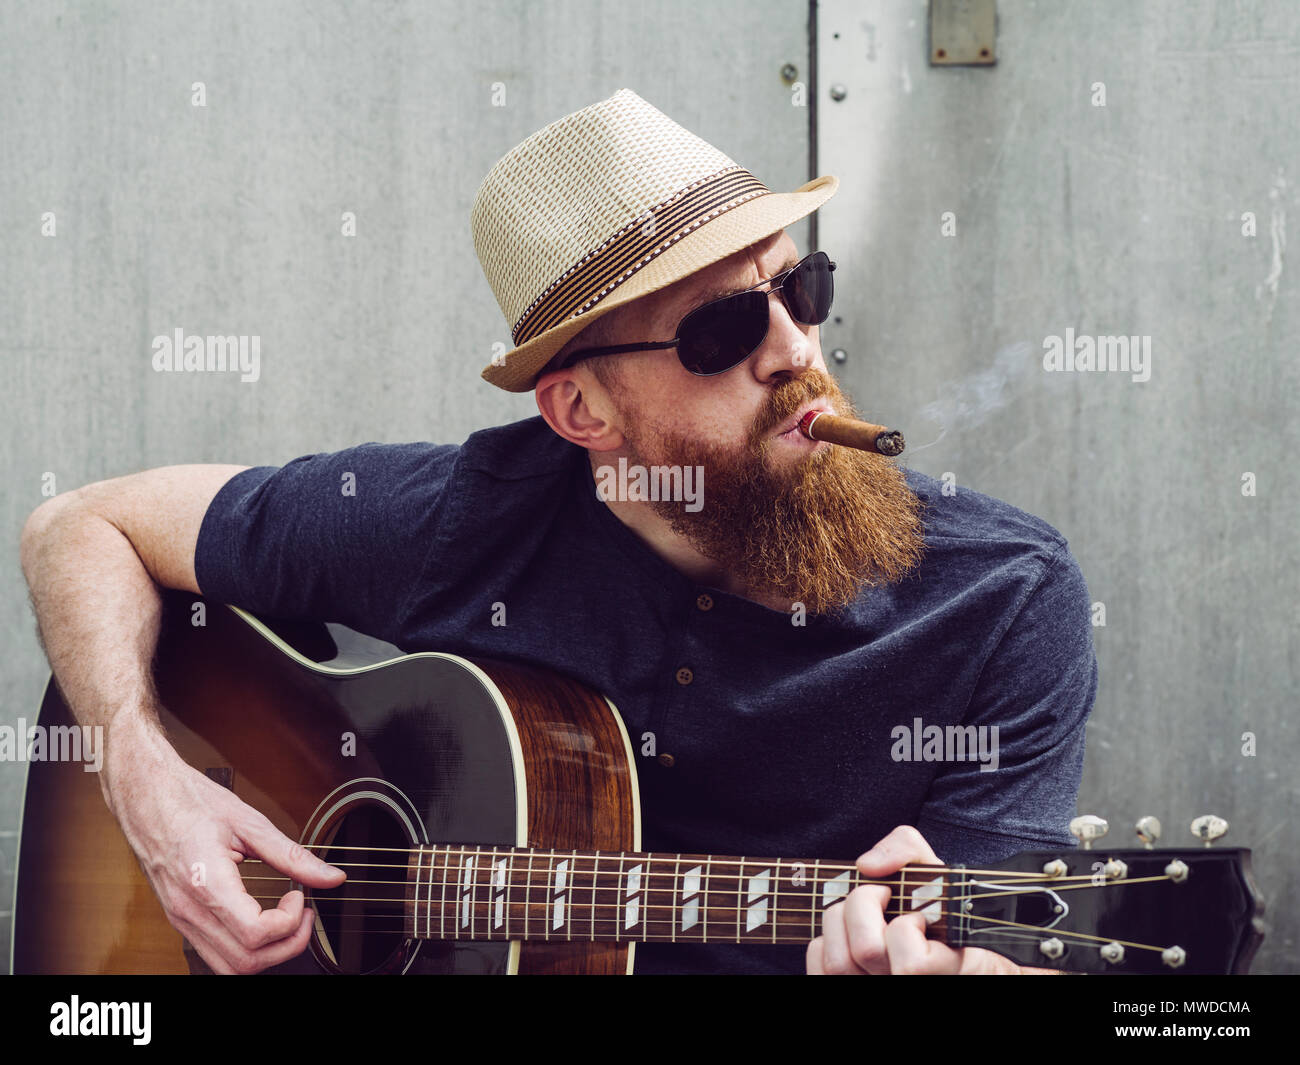 Photo of a bearded man playing acoustic guitar white smoking a cigar. - Stock Image